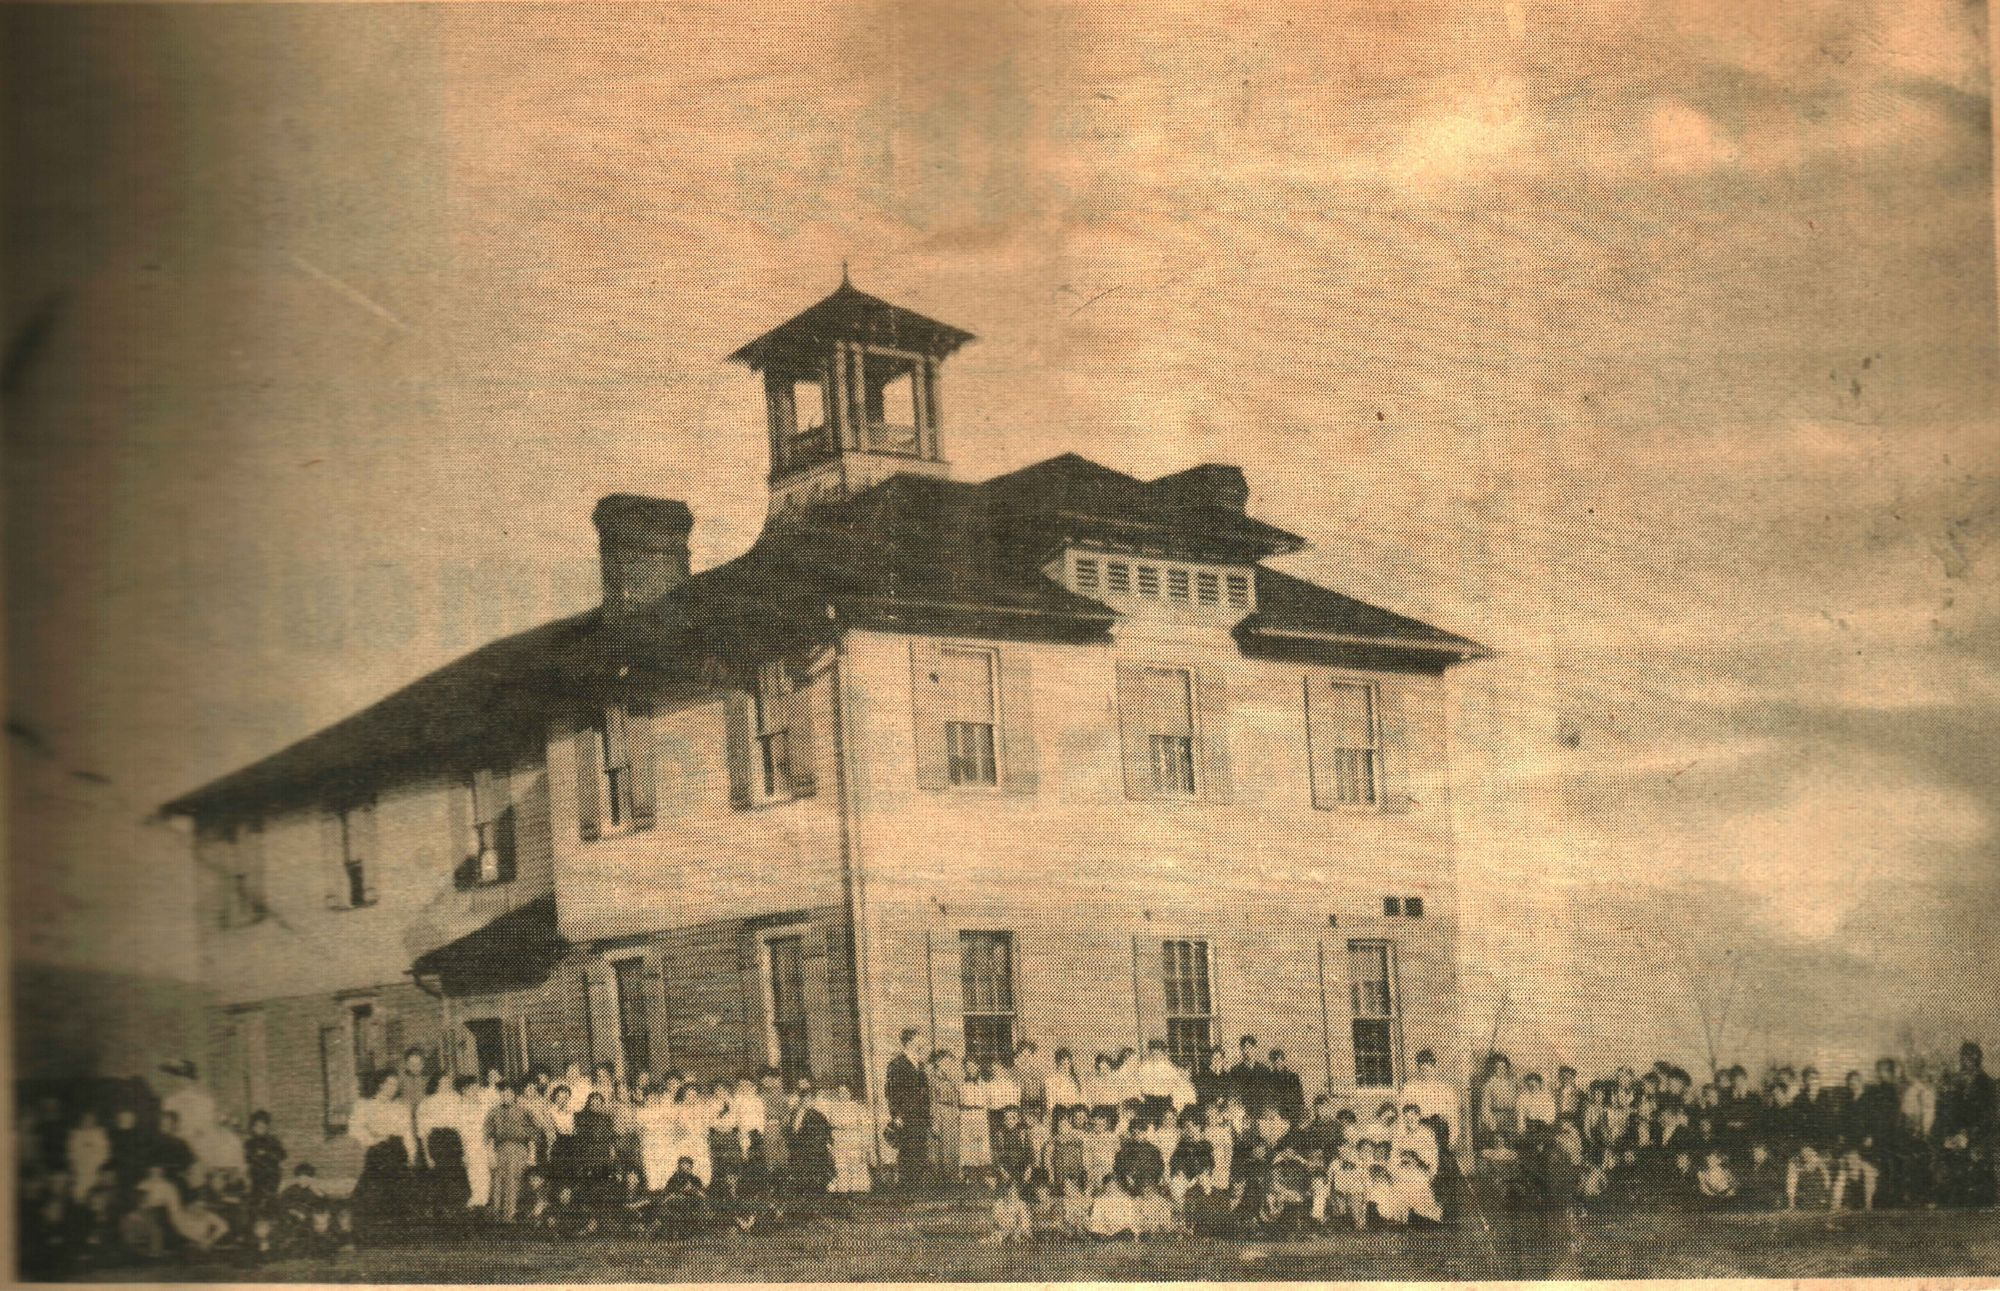 Kenova Elementary School was originally housed in this frame building on 11th and Poplar Streets. It burned down sometime between 1906 and 1910. Image courtesy of the Ceredo Historical Society Museum.